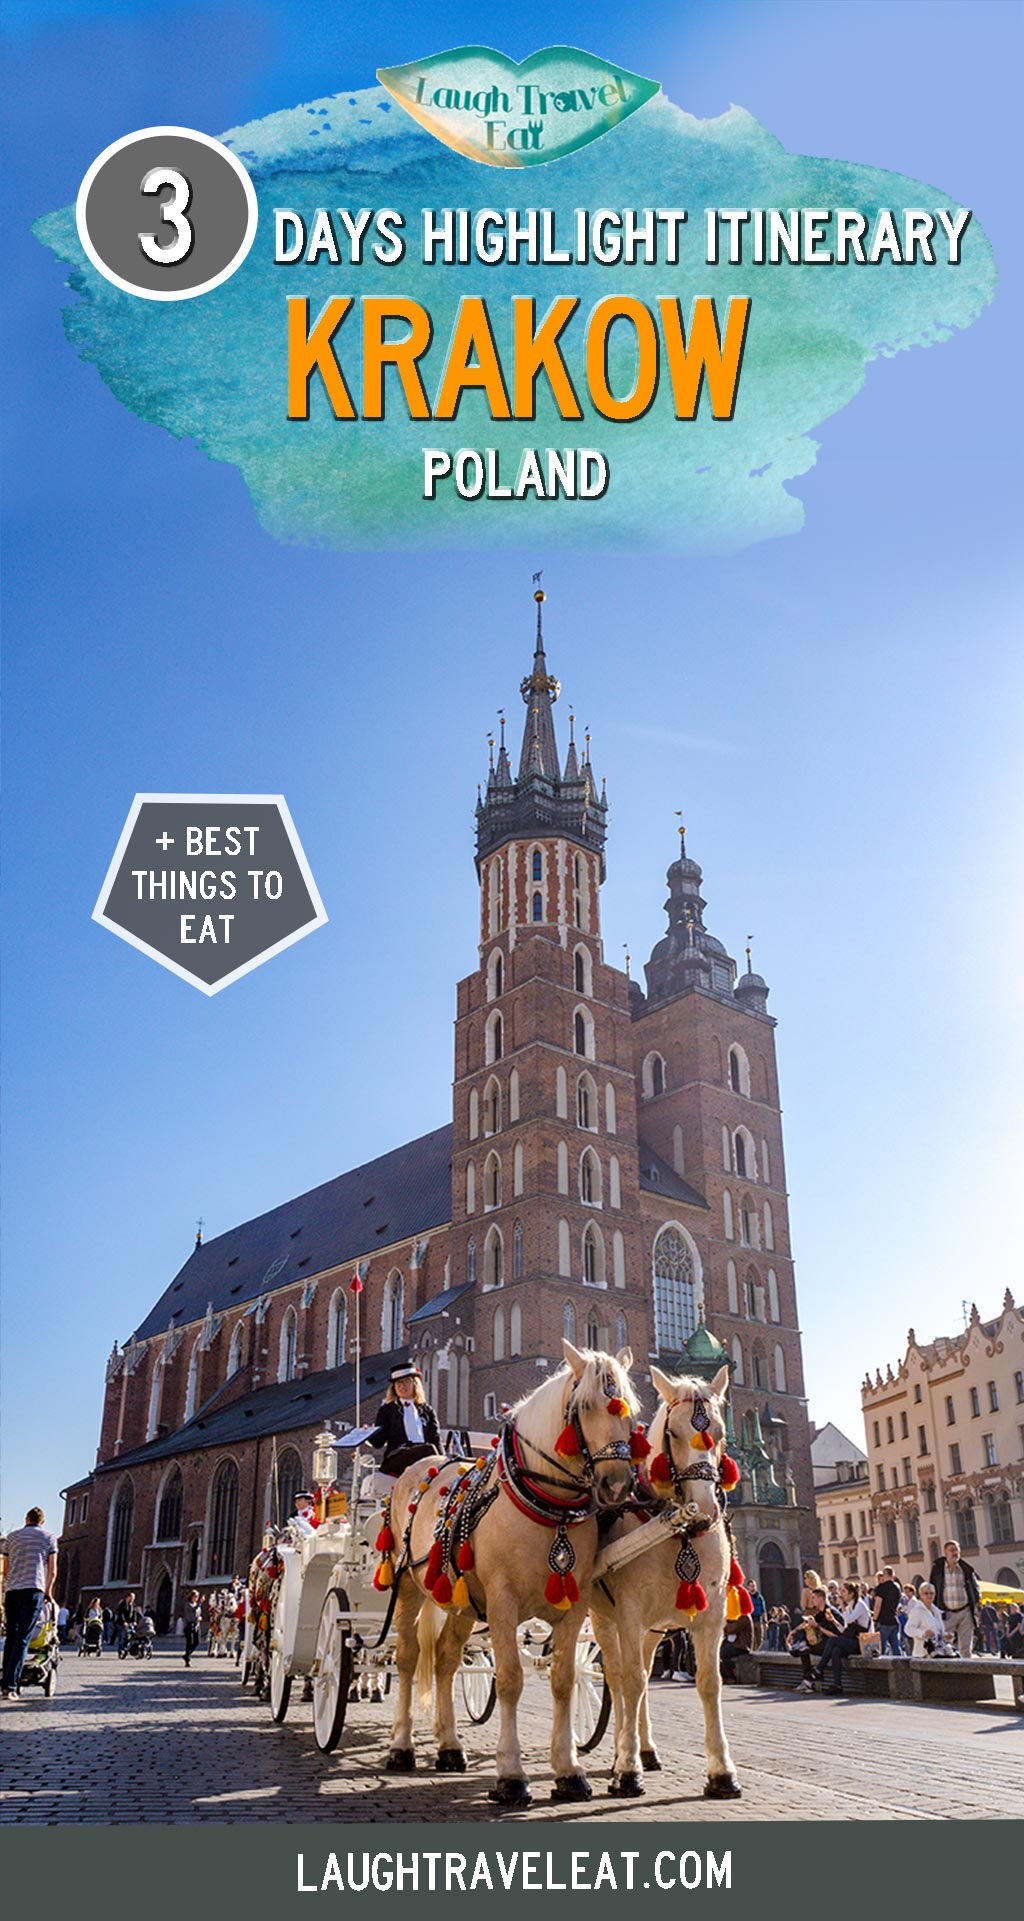 Krakow is one of the best cities to visit in Poland – why? It was the capital before Warsaw and one of the few cities whose old town remain undamaged in WWII. It's the final resting place of many Polish monarchs with a rich Jewish past. The city has surprised me with its historical and colourful architecture and affordability, and three days here is a perfect amount of time to see the highlights #Krakow #Poland